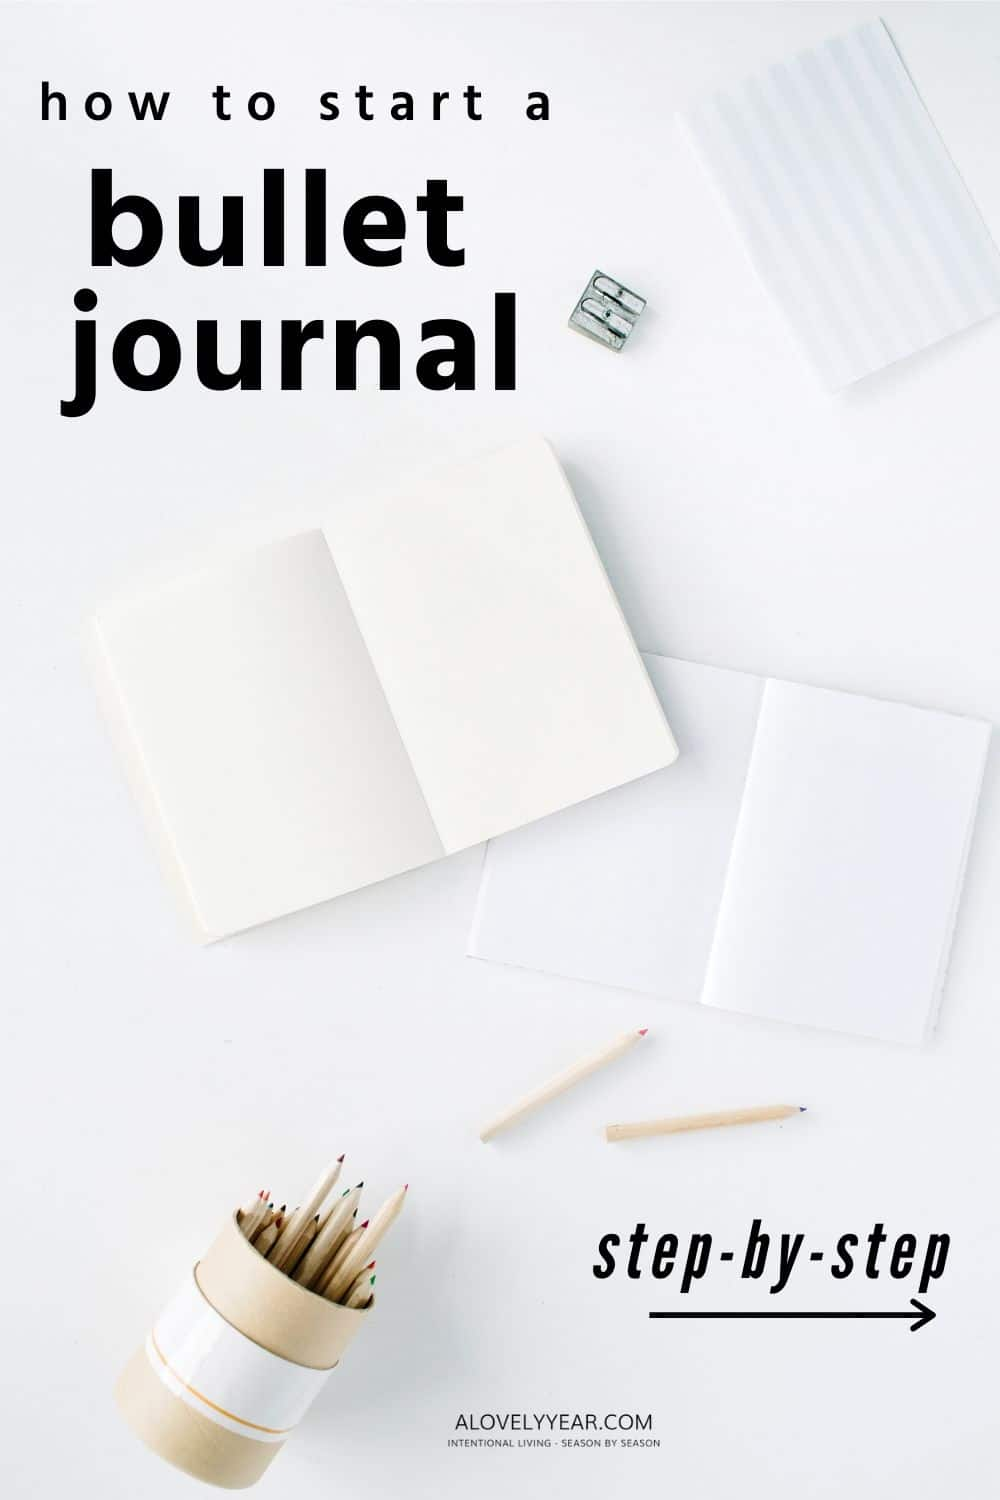 blank journals on a desk